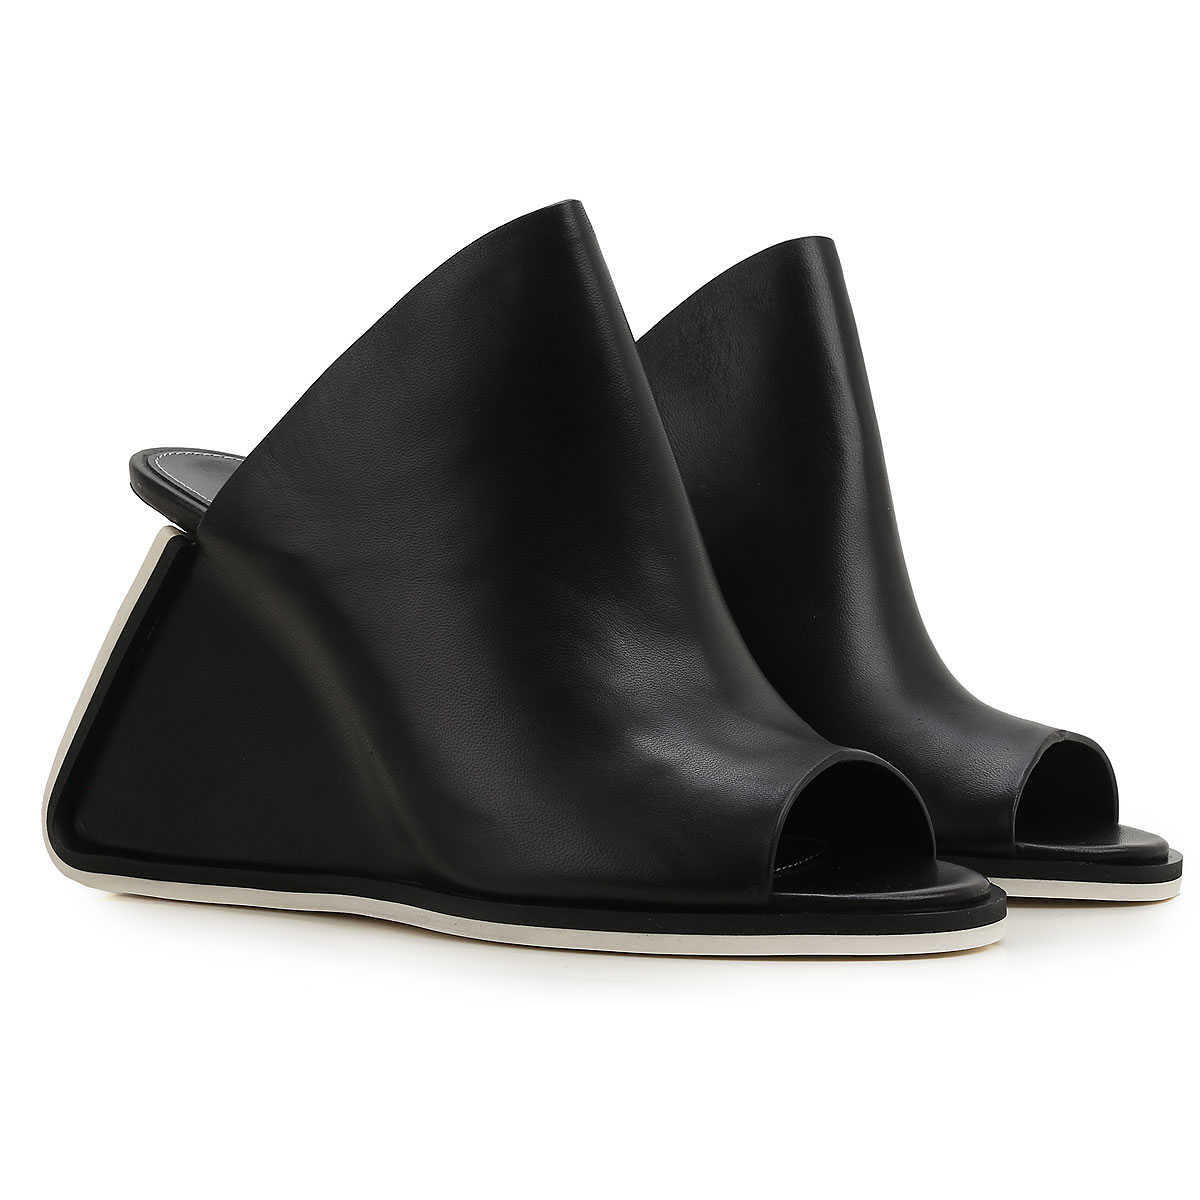 Premiata Wedges for Women On Sale in Outlet Black - GOOFASH